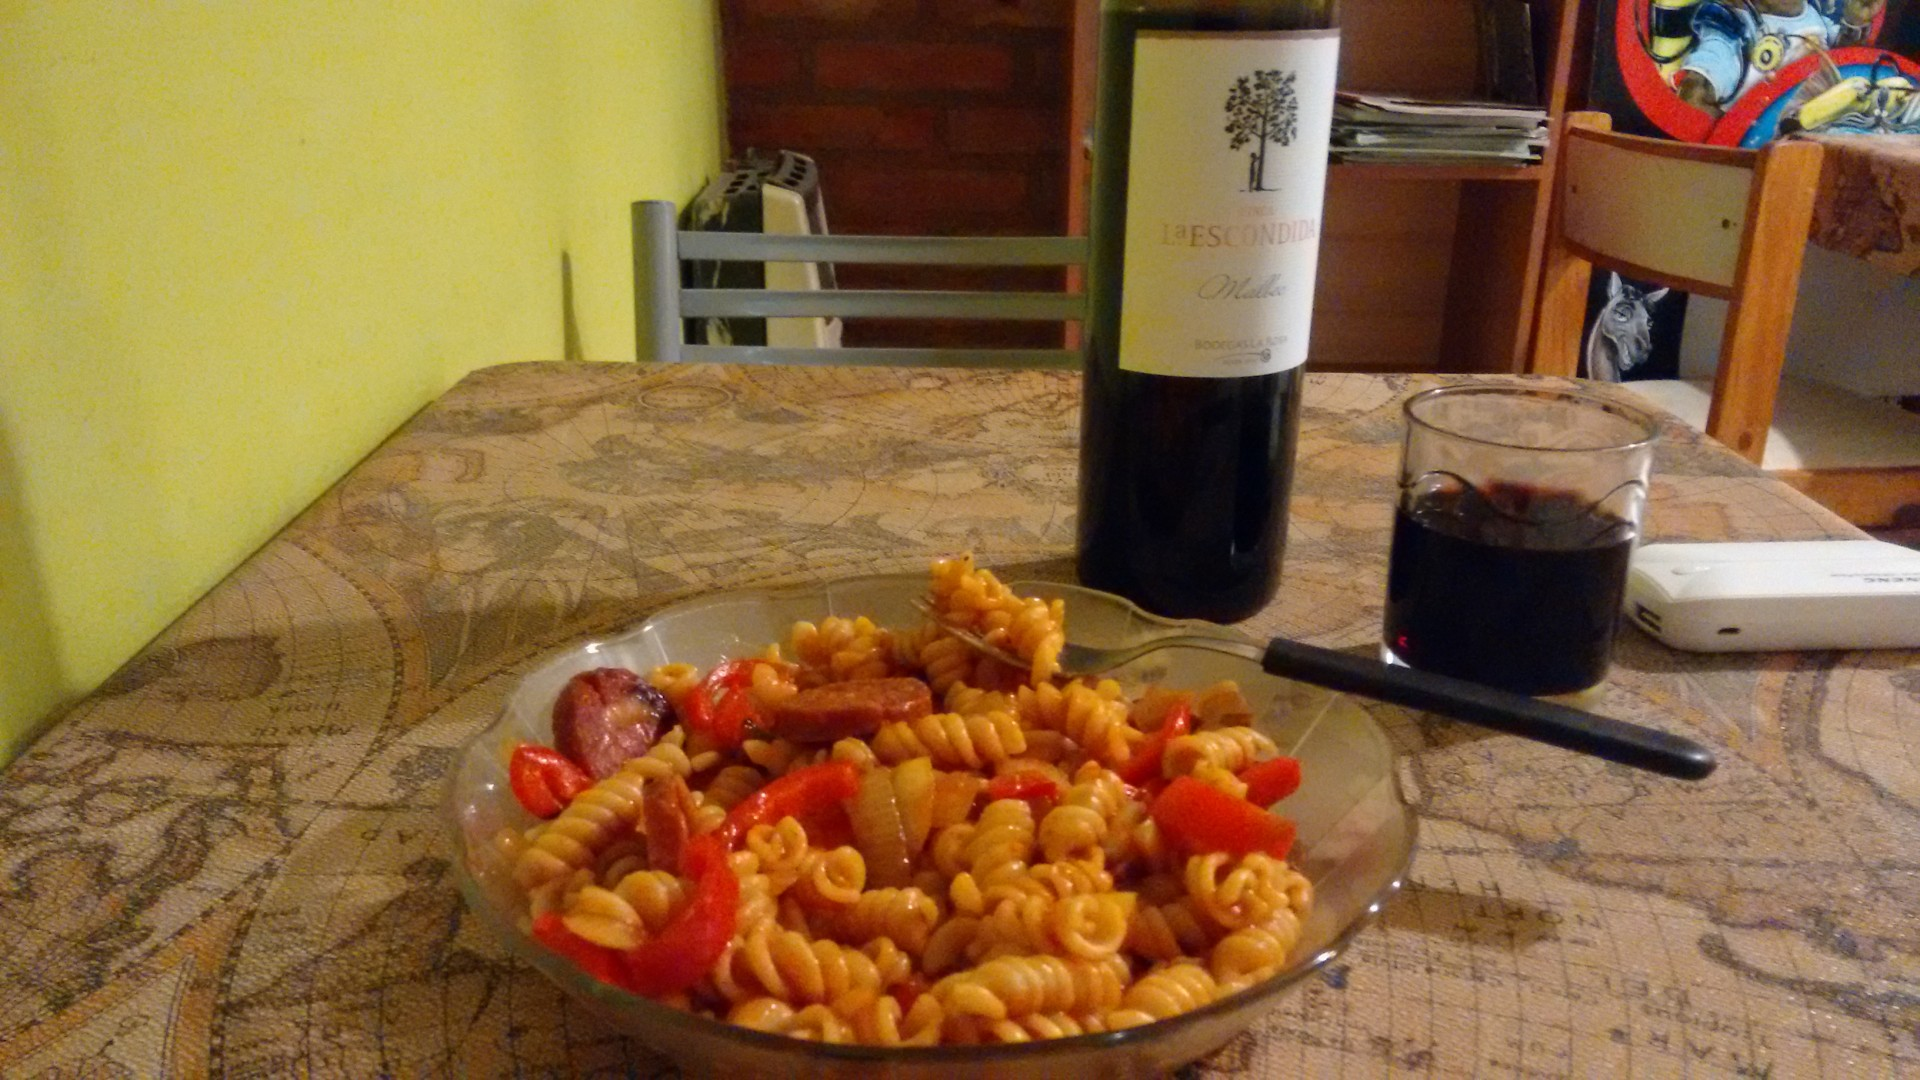 It's a typical evening dinner - with £2 wine!